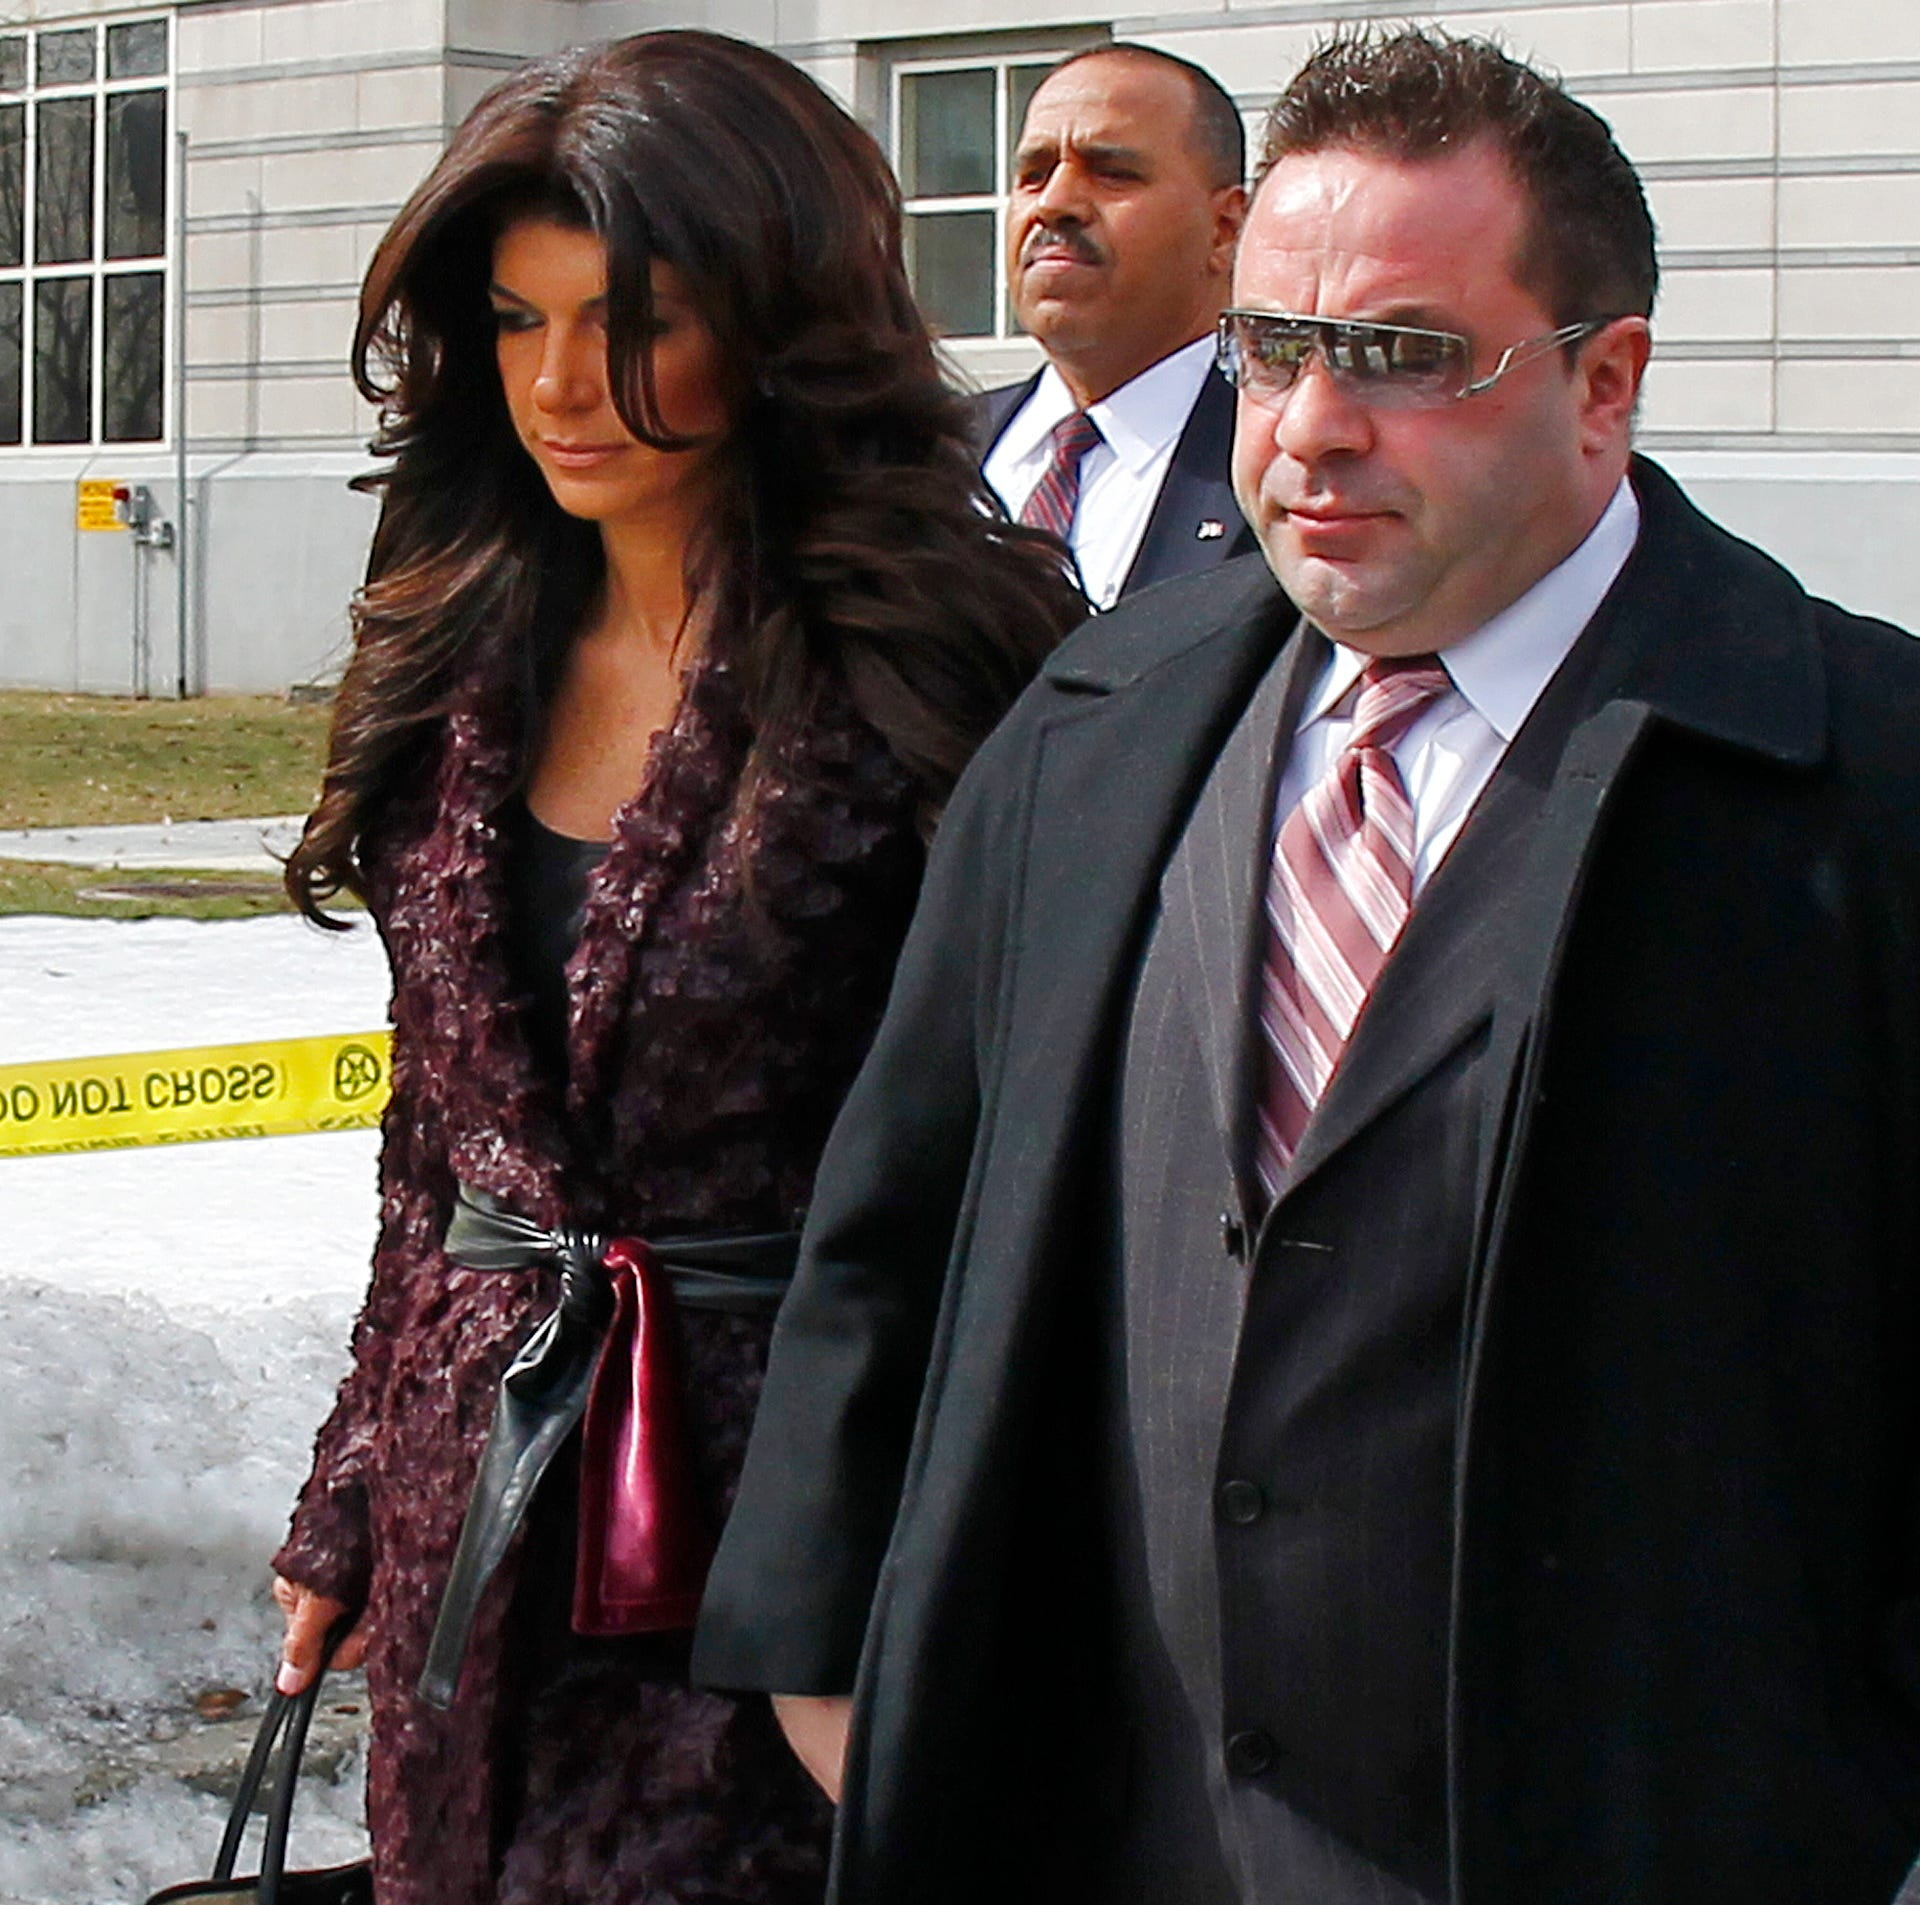 RHONJ: Is confidence growing in the Joe Giudice deportation case after reprieve?